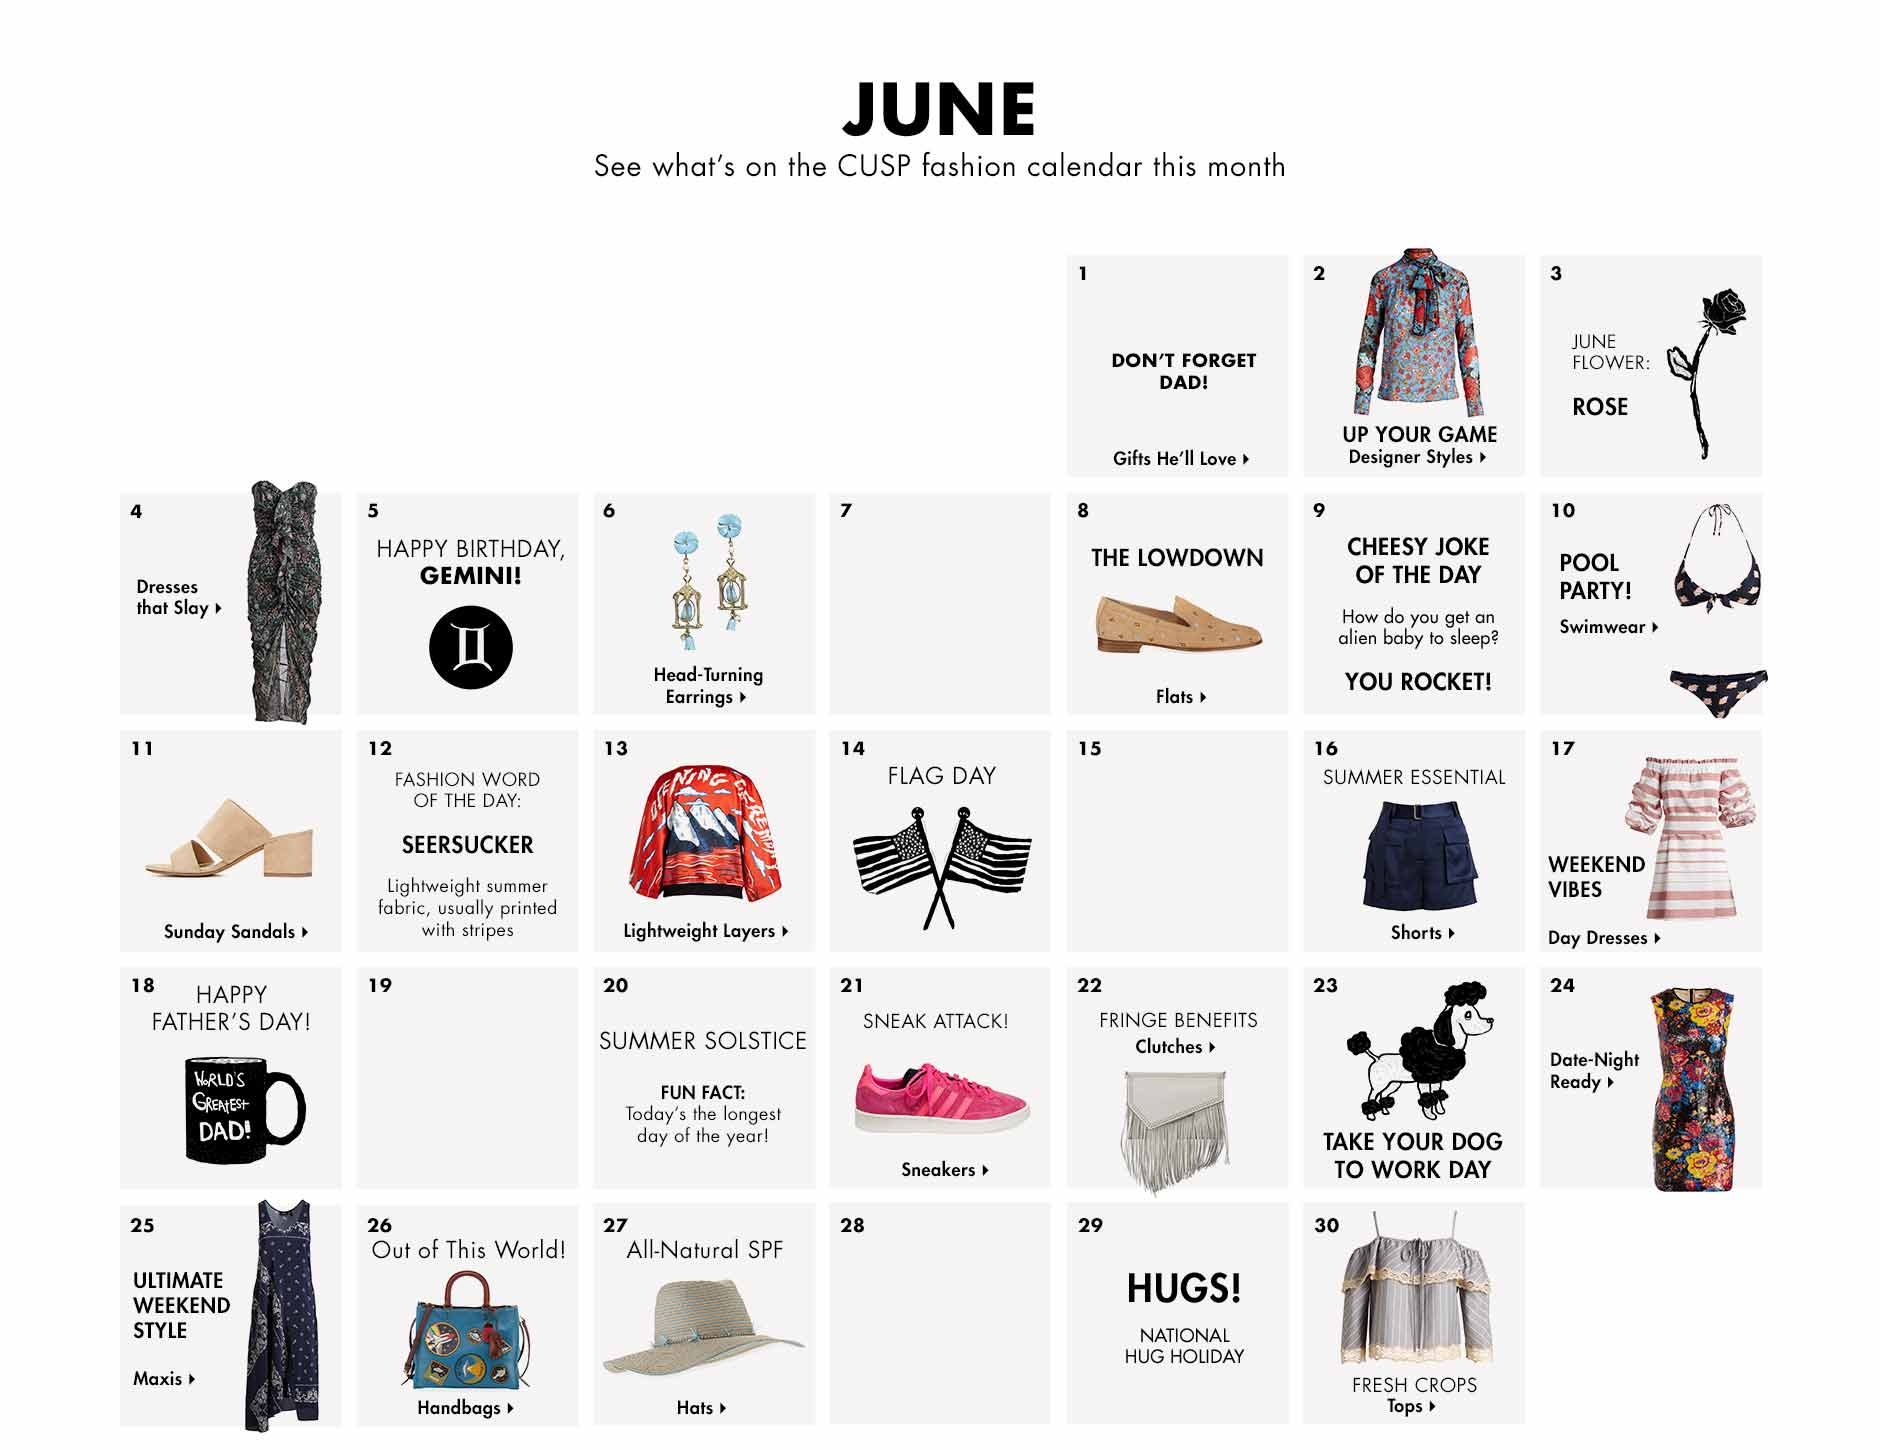 June - See what's on the CUSP fashion calendar this month